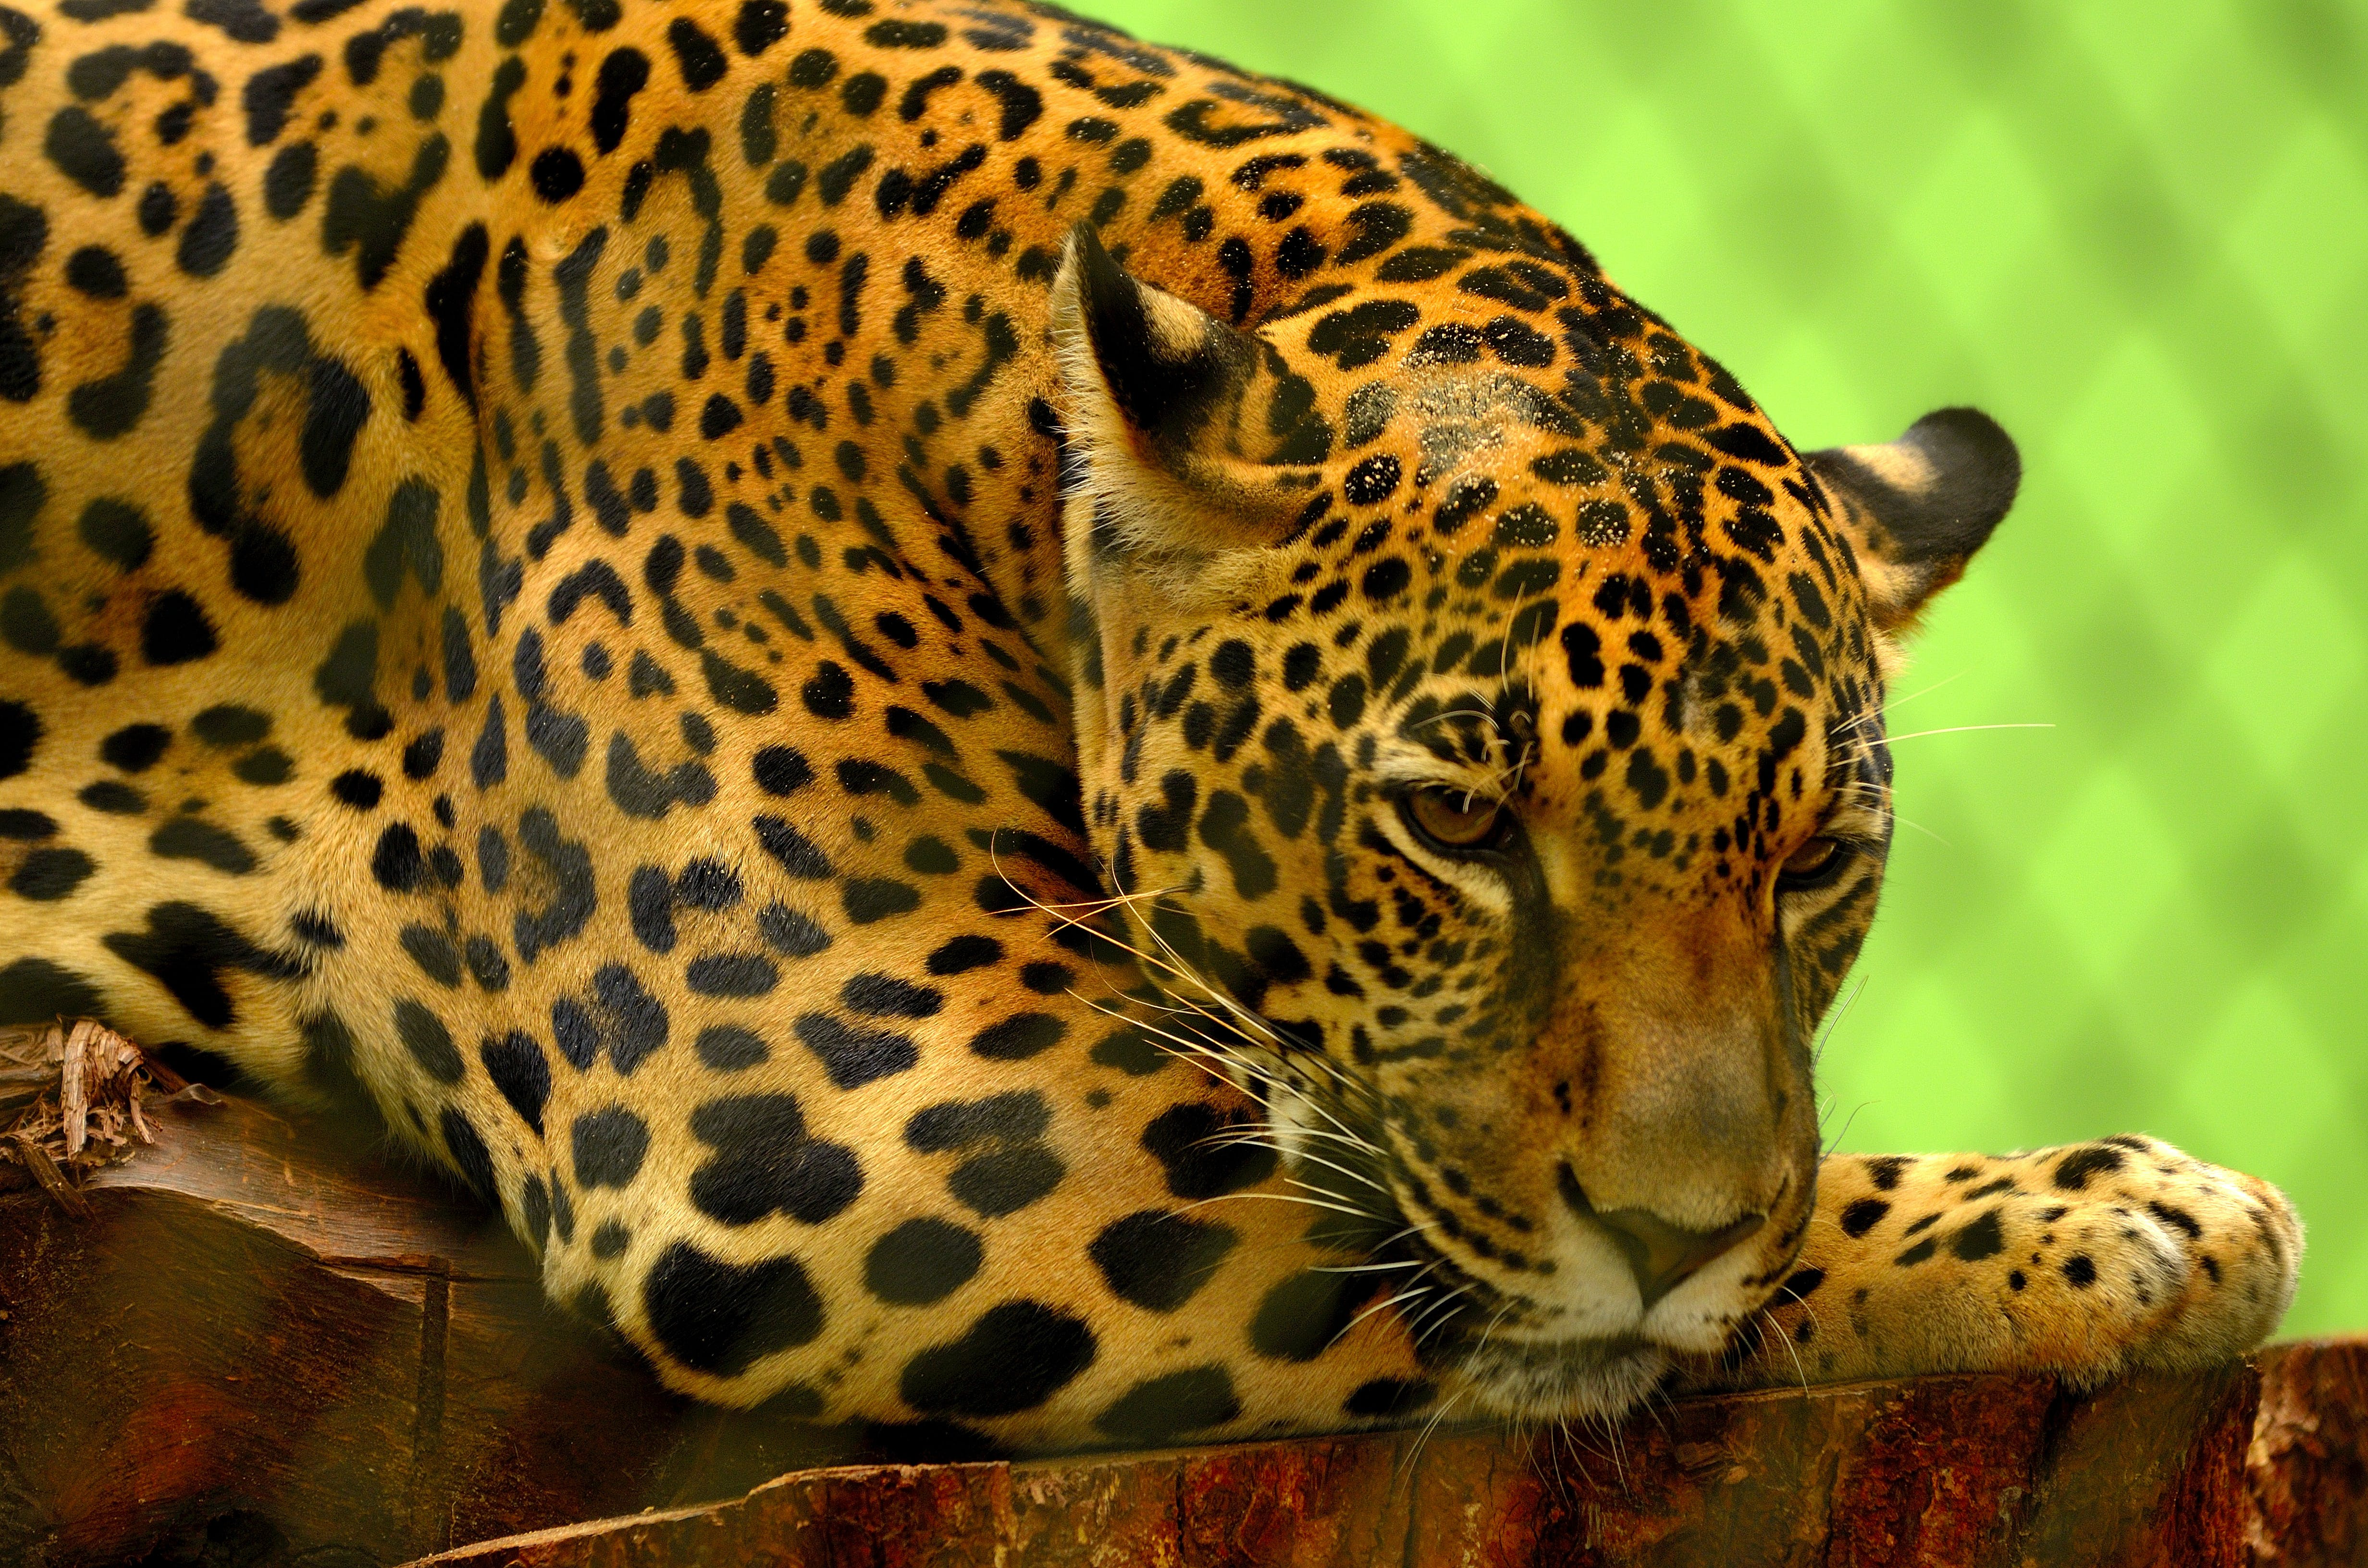 Leopard on Brown Log